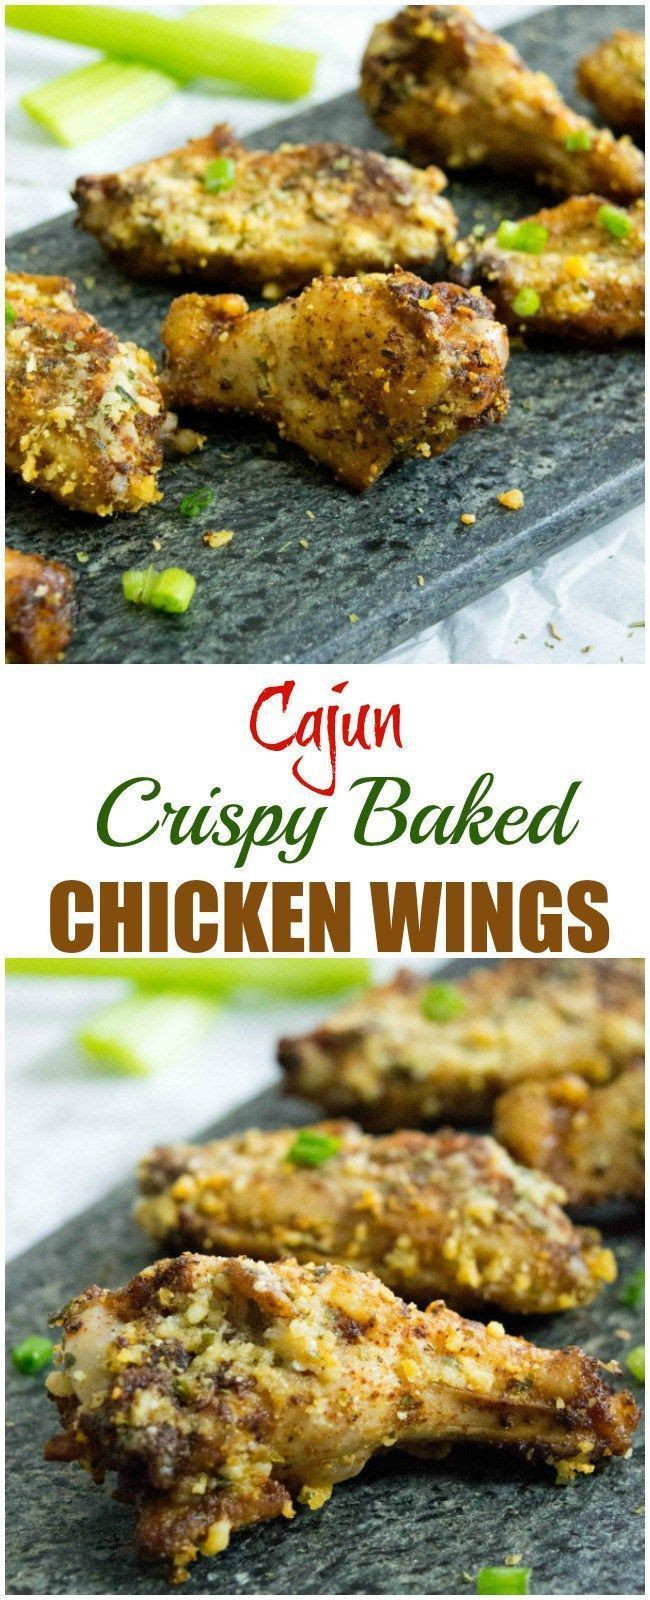 Healthy Sides For Baked Chicken  81 best images about Side Dishes on Pinterest